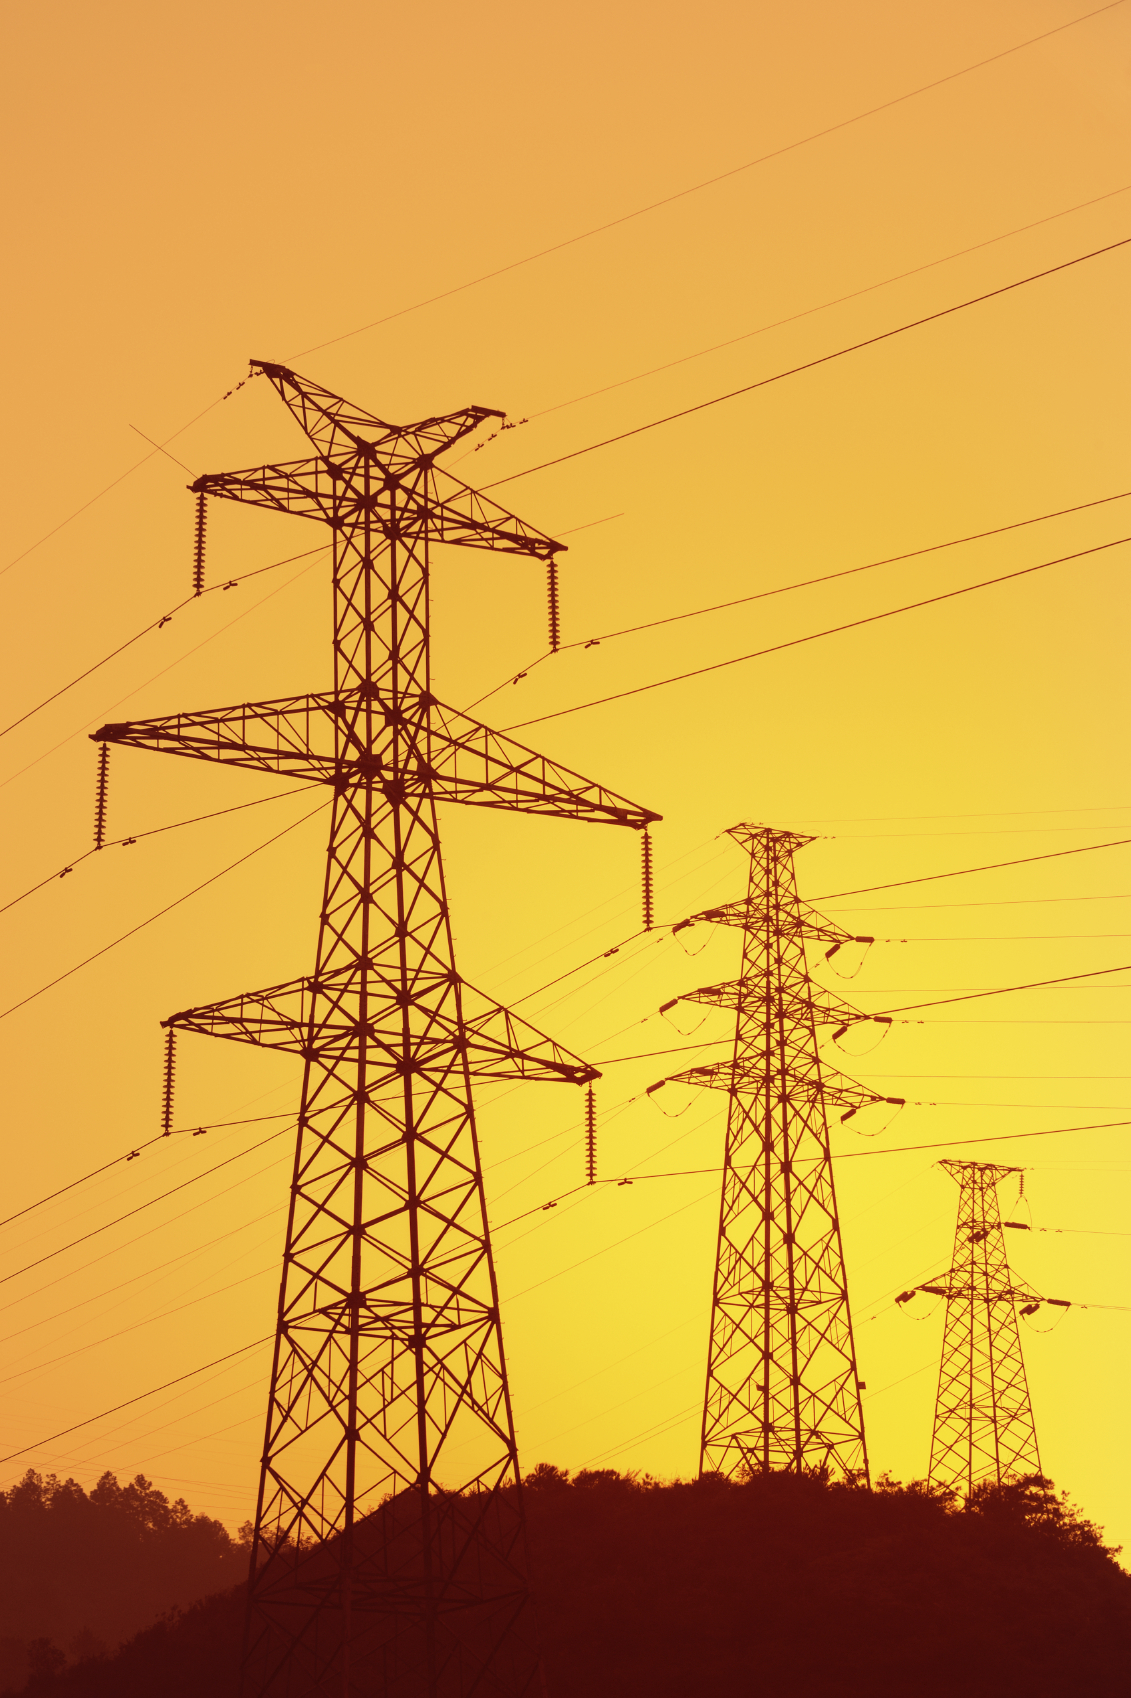 hight resolution of in short the power grid will remain strong as states implement the clean power plan here are 10 key facts on how the final standards protect grid